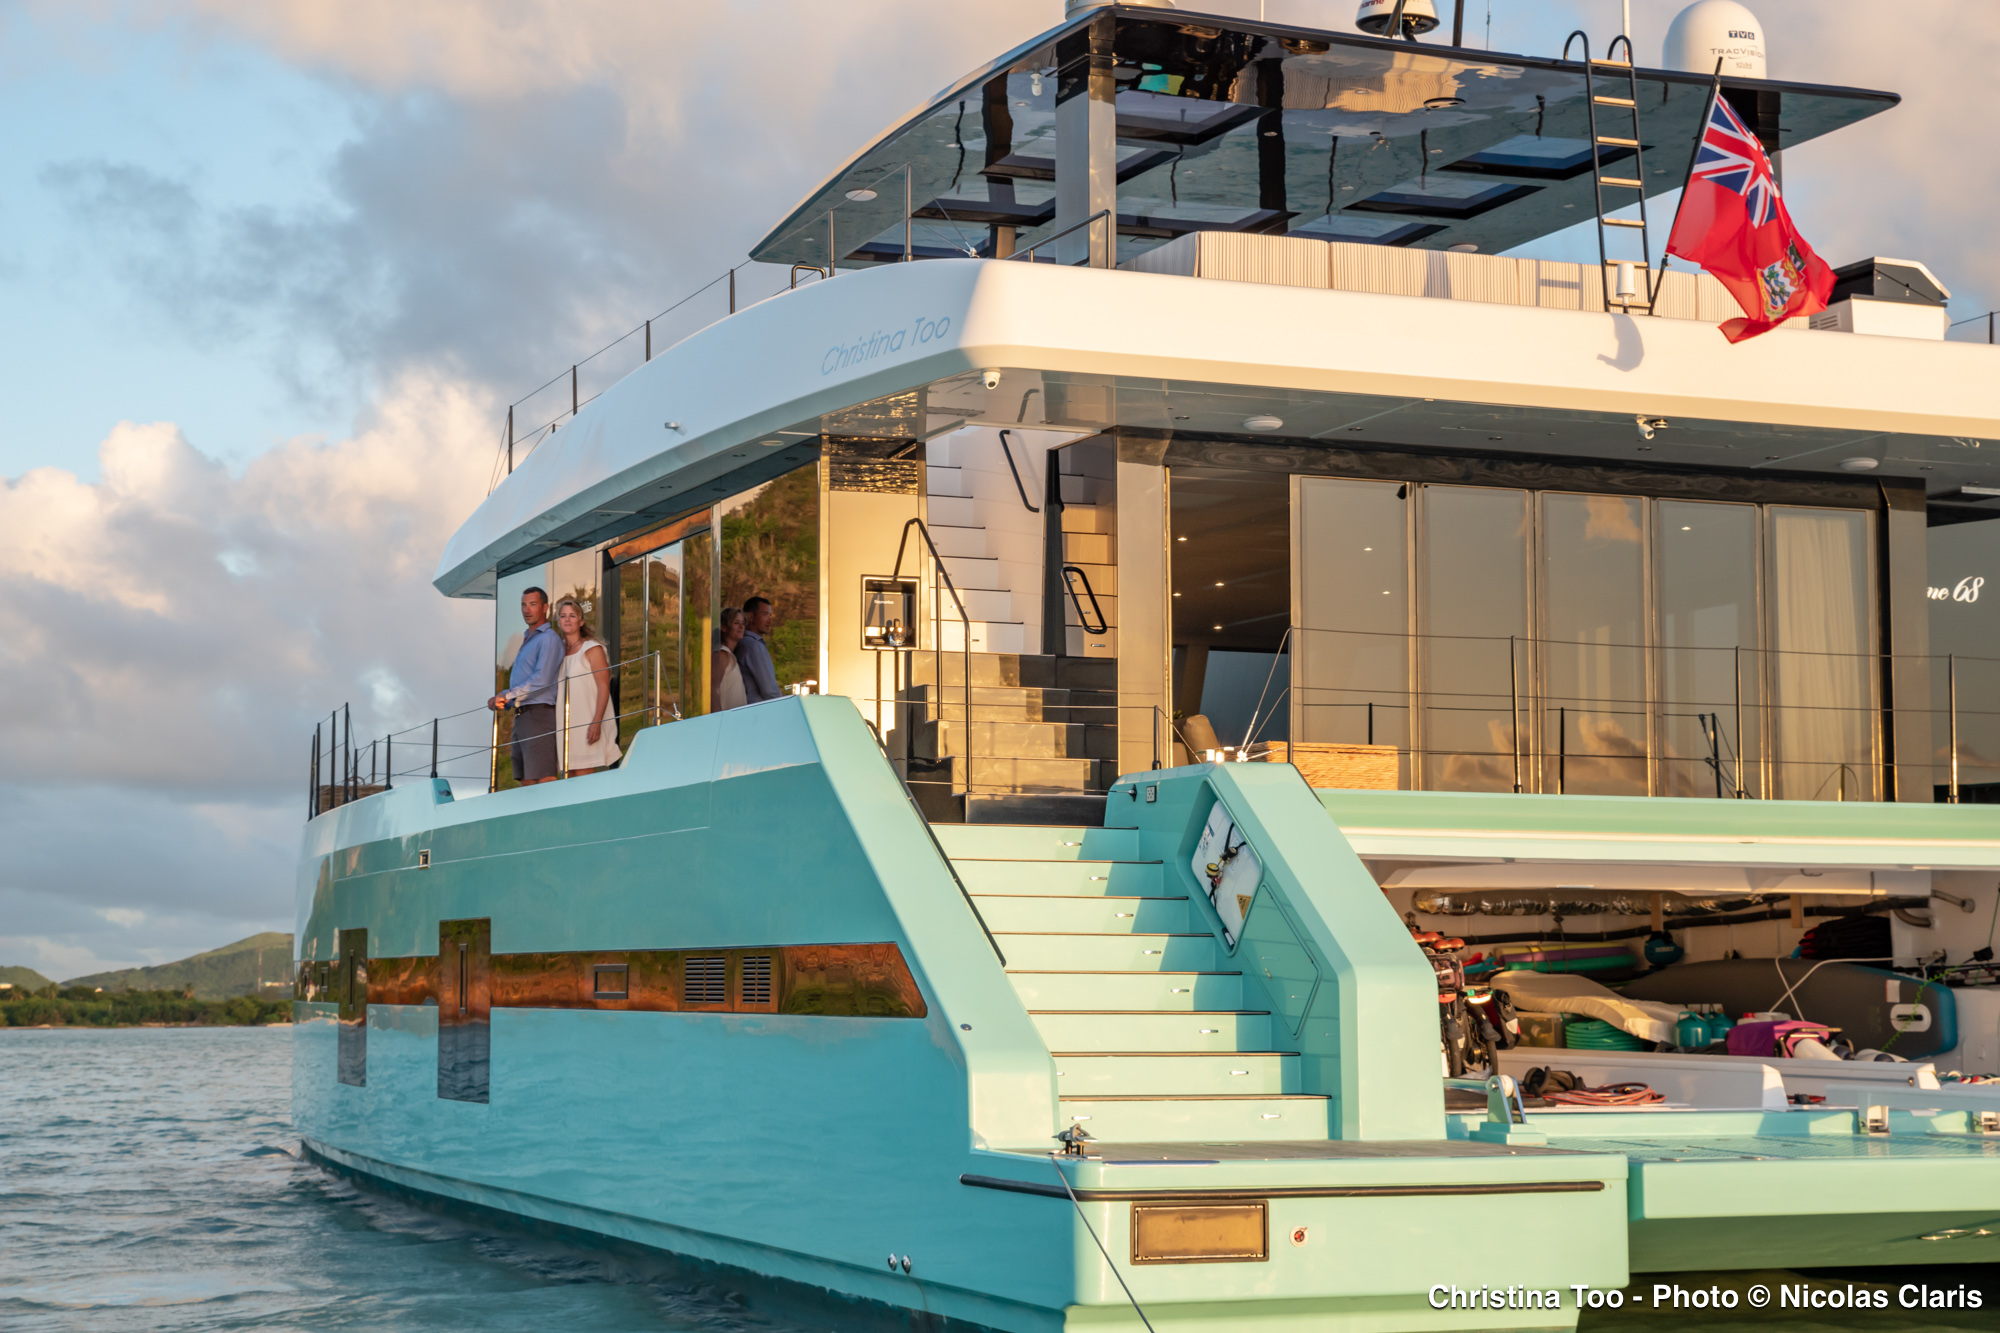 Christina Too - outstanding catamaran yacht offering luxury and relaxed vacations